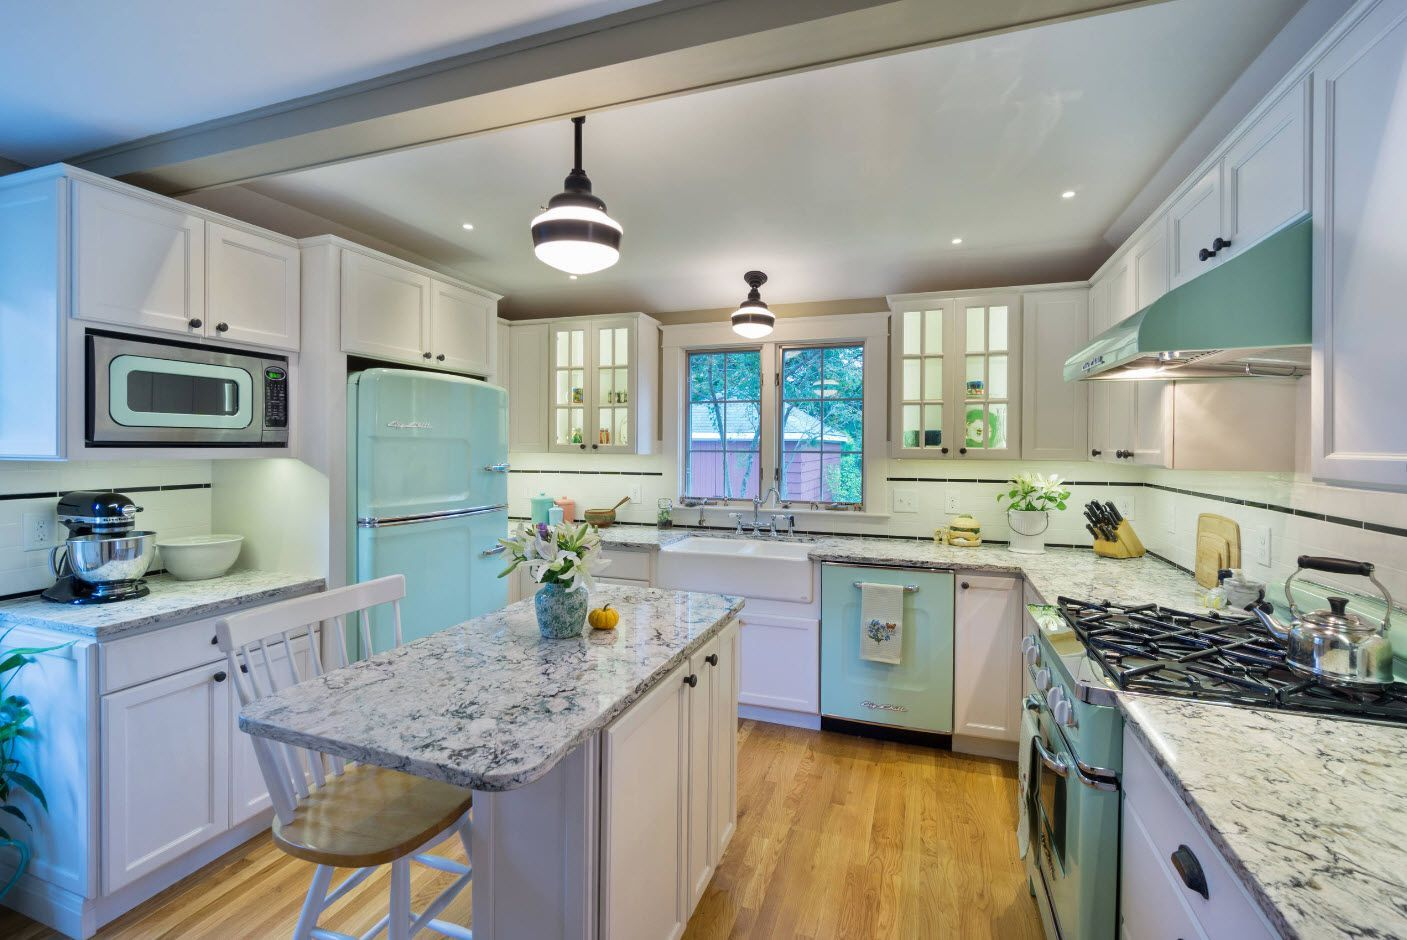 Cozy interior decoration for classic furnished kitchen